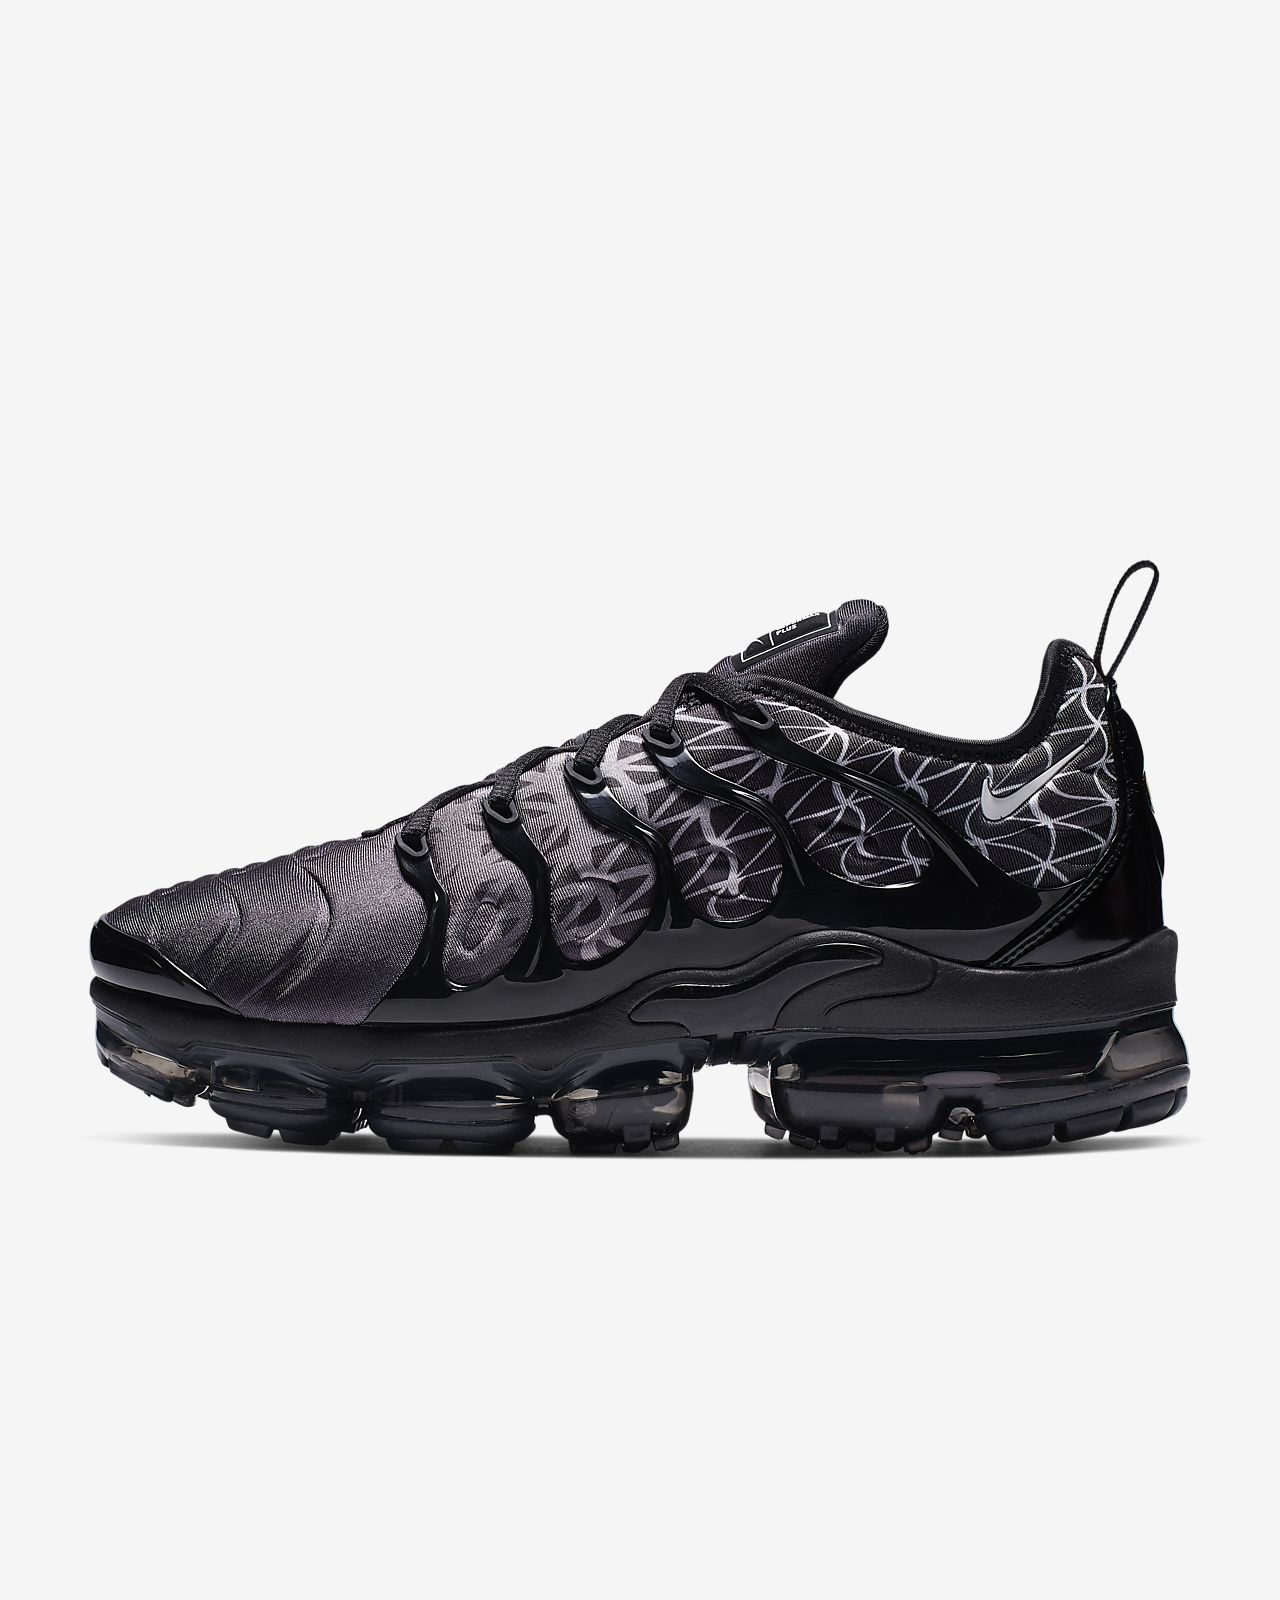 sneakers for cheap 93481 94ba0 ... Chaussure Nike Air VaporMax Plus pour Homme